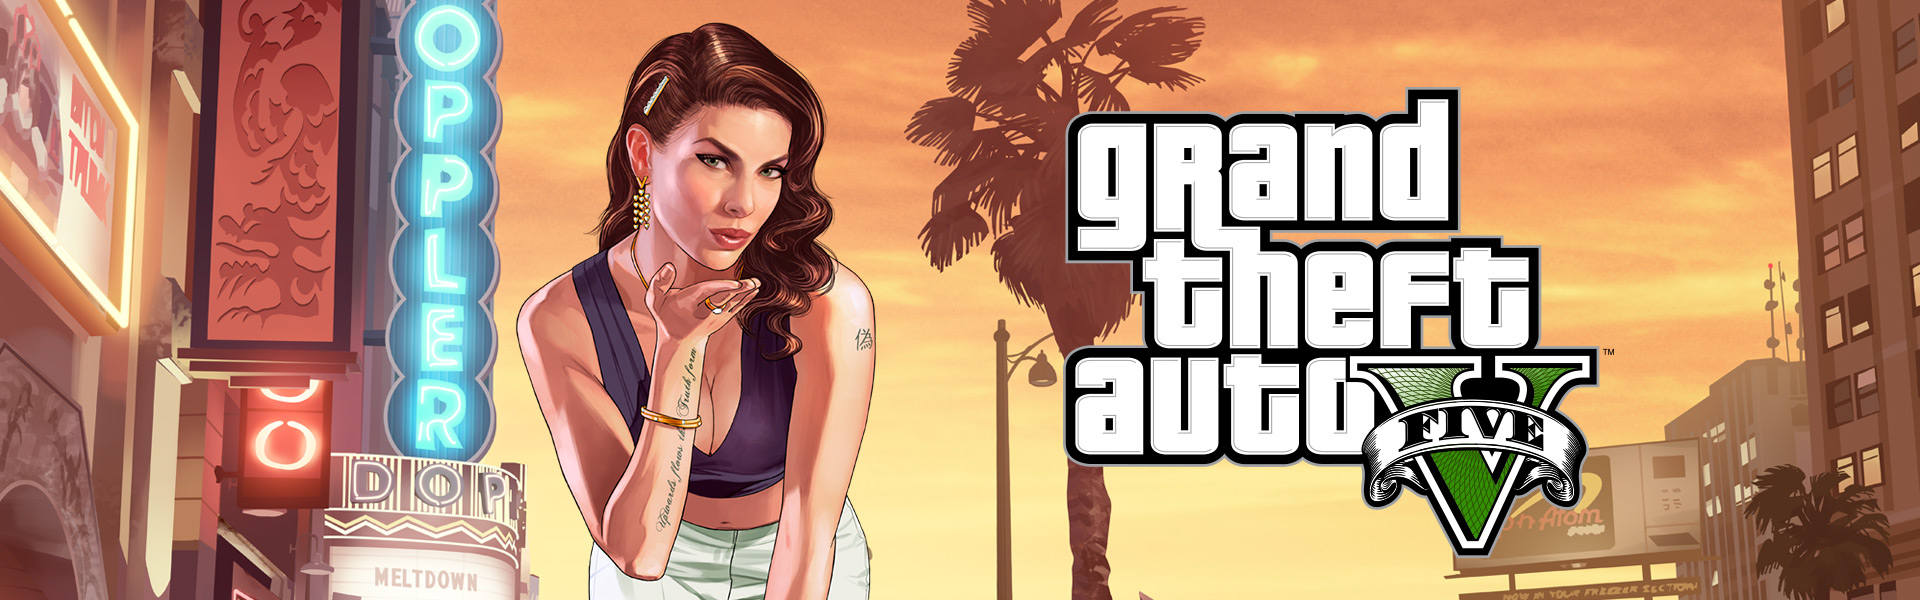 Grand Theft Auto V, Girl leaning forward blowing a kiss with sunset behind her